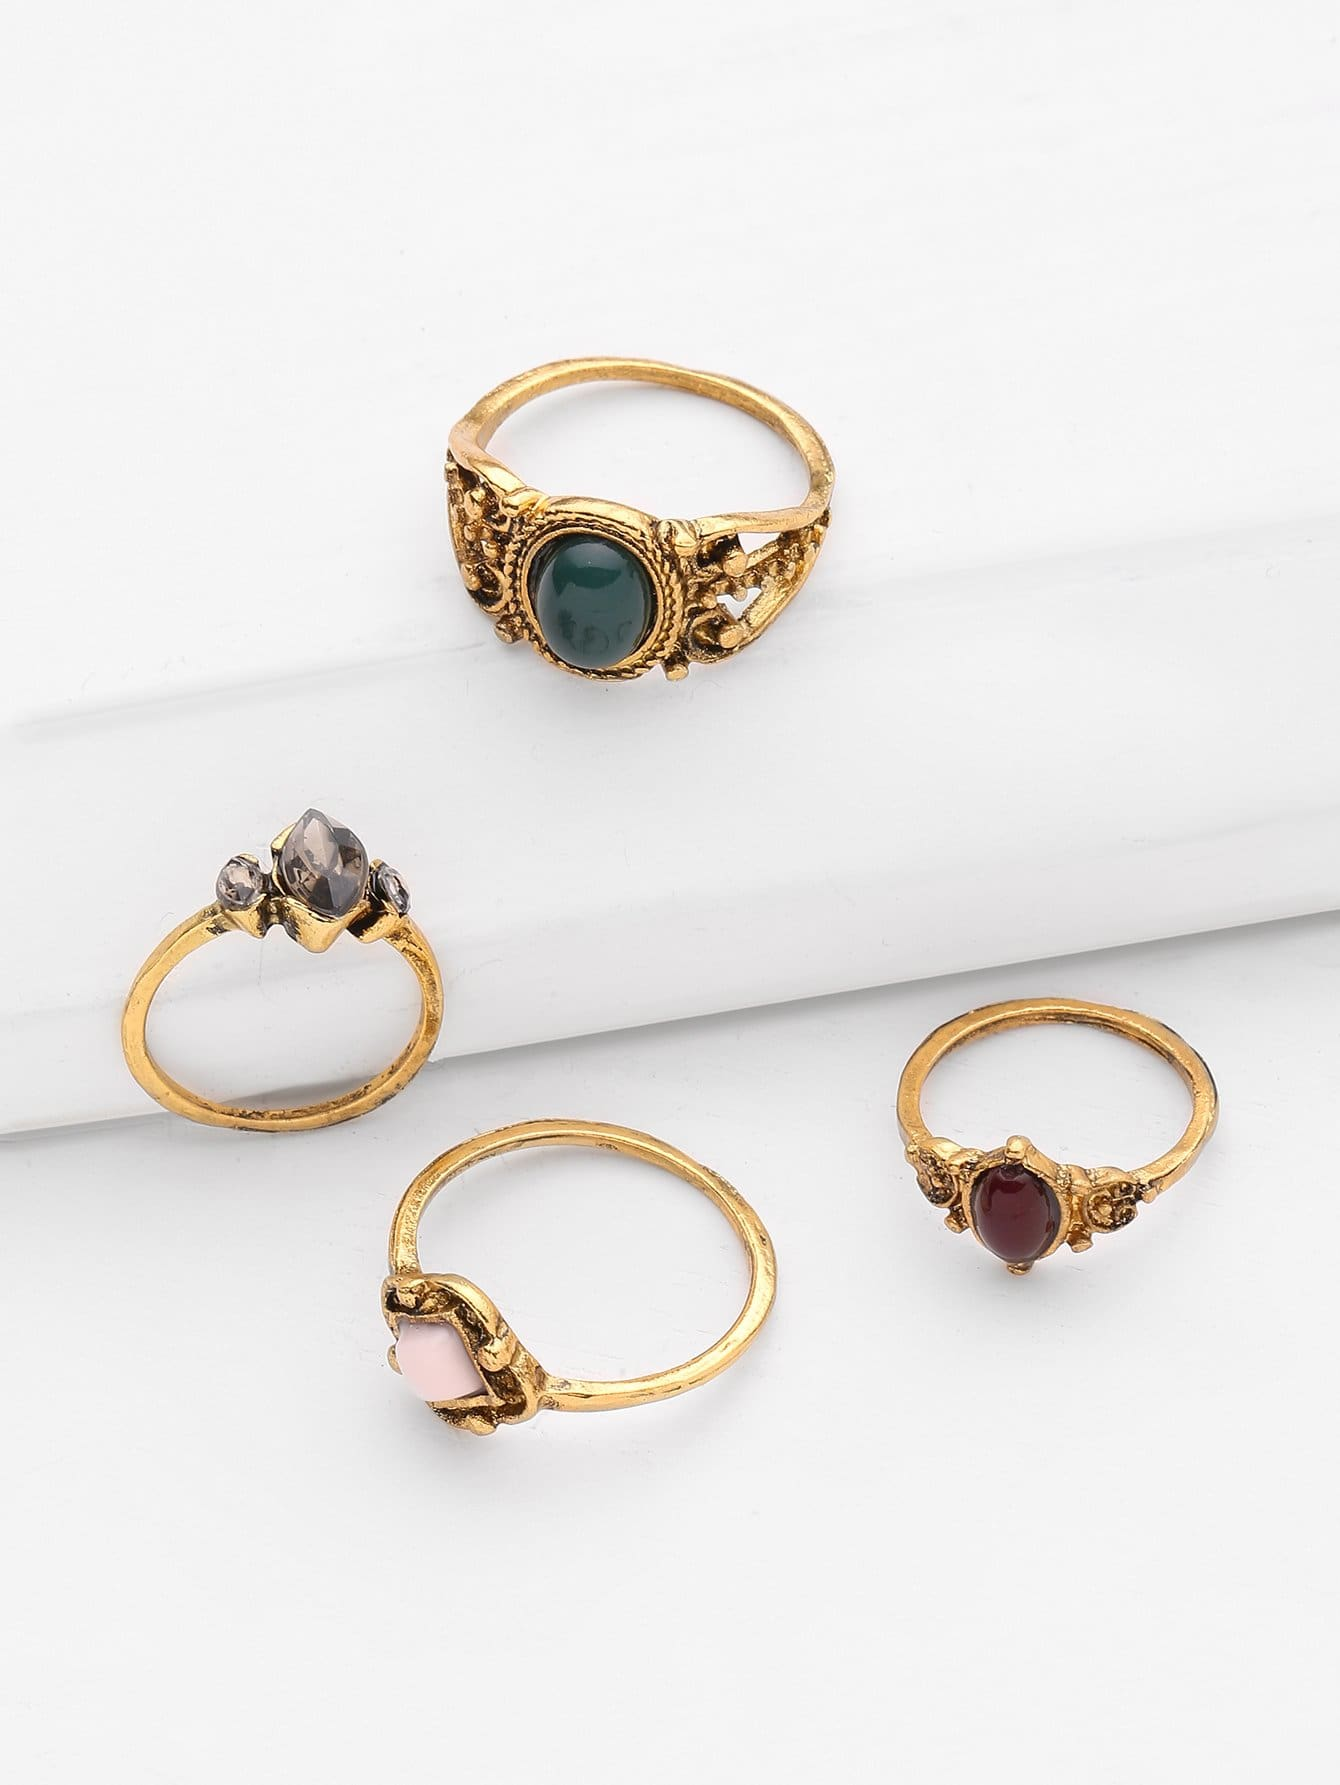 Gemstone Design Retro Ring Set 4pcs - Rings